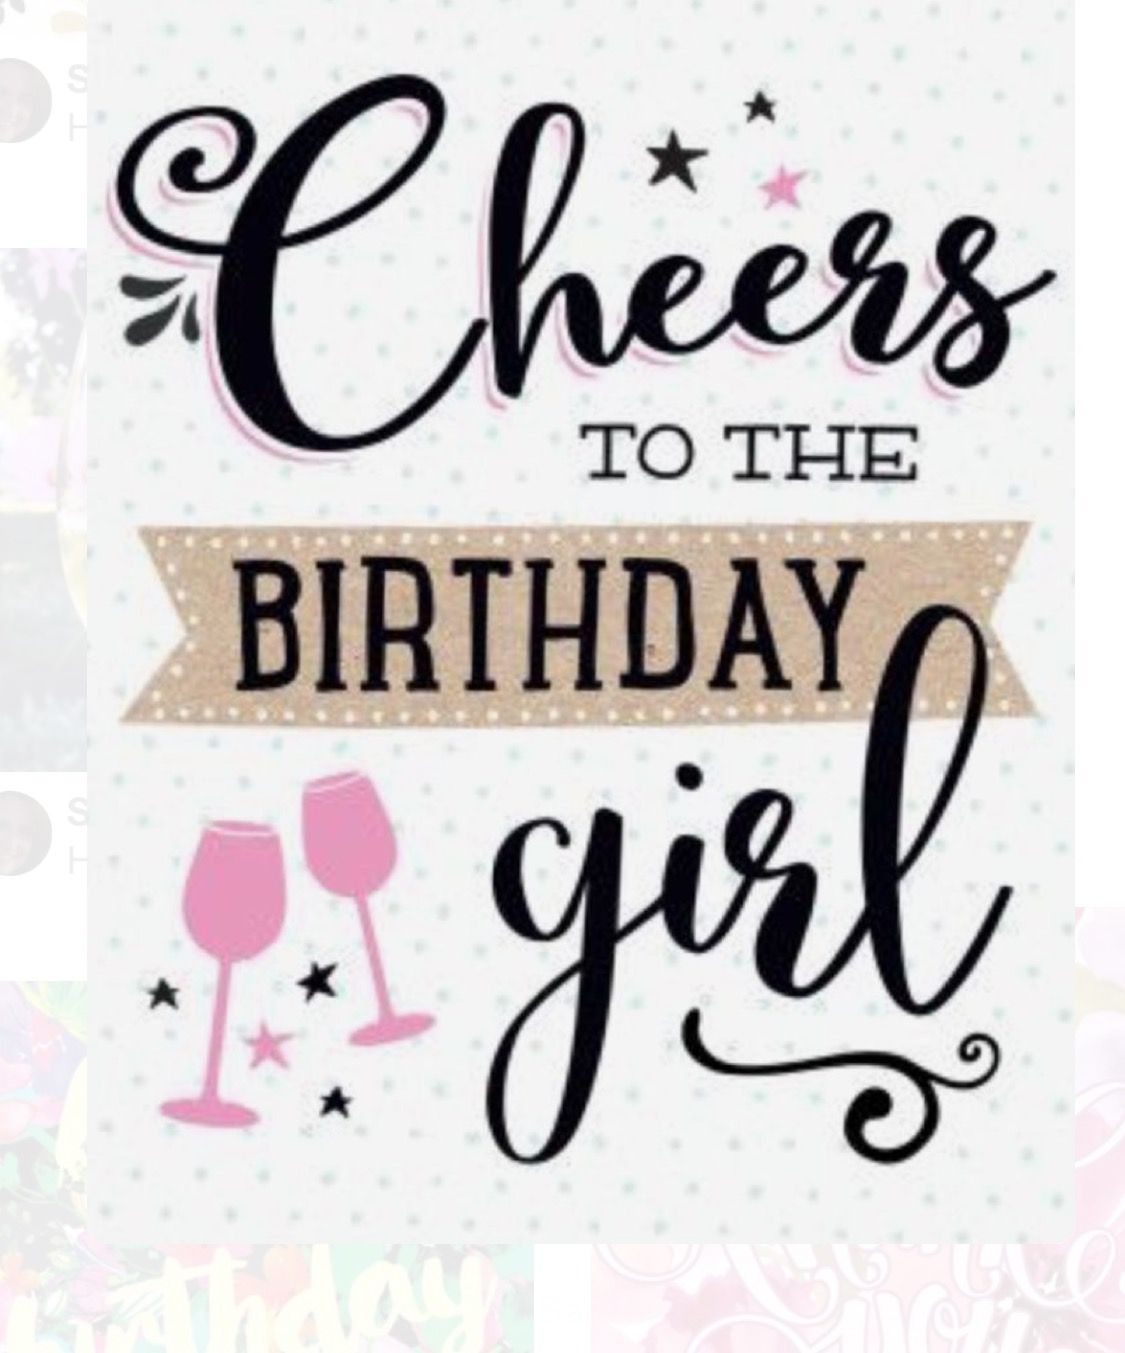 Pretentious Happy Birthday Memes Pin By Stacy Dos Santos On Holiday Cards Pinterest Happy Birthday Meme Female Friend Happy Birthday Gilmore Girl Meme